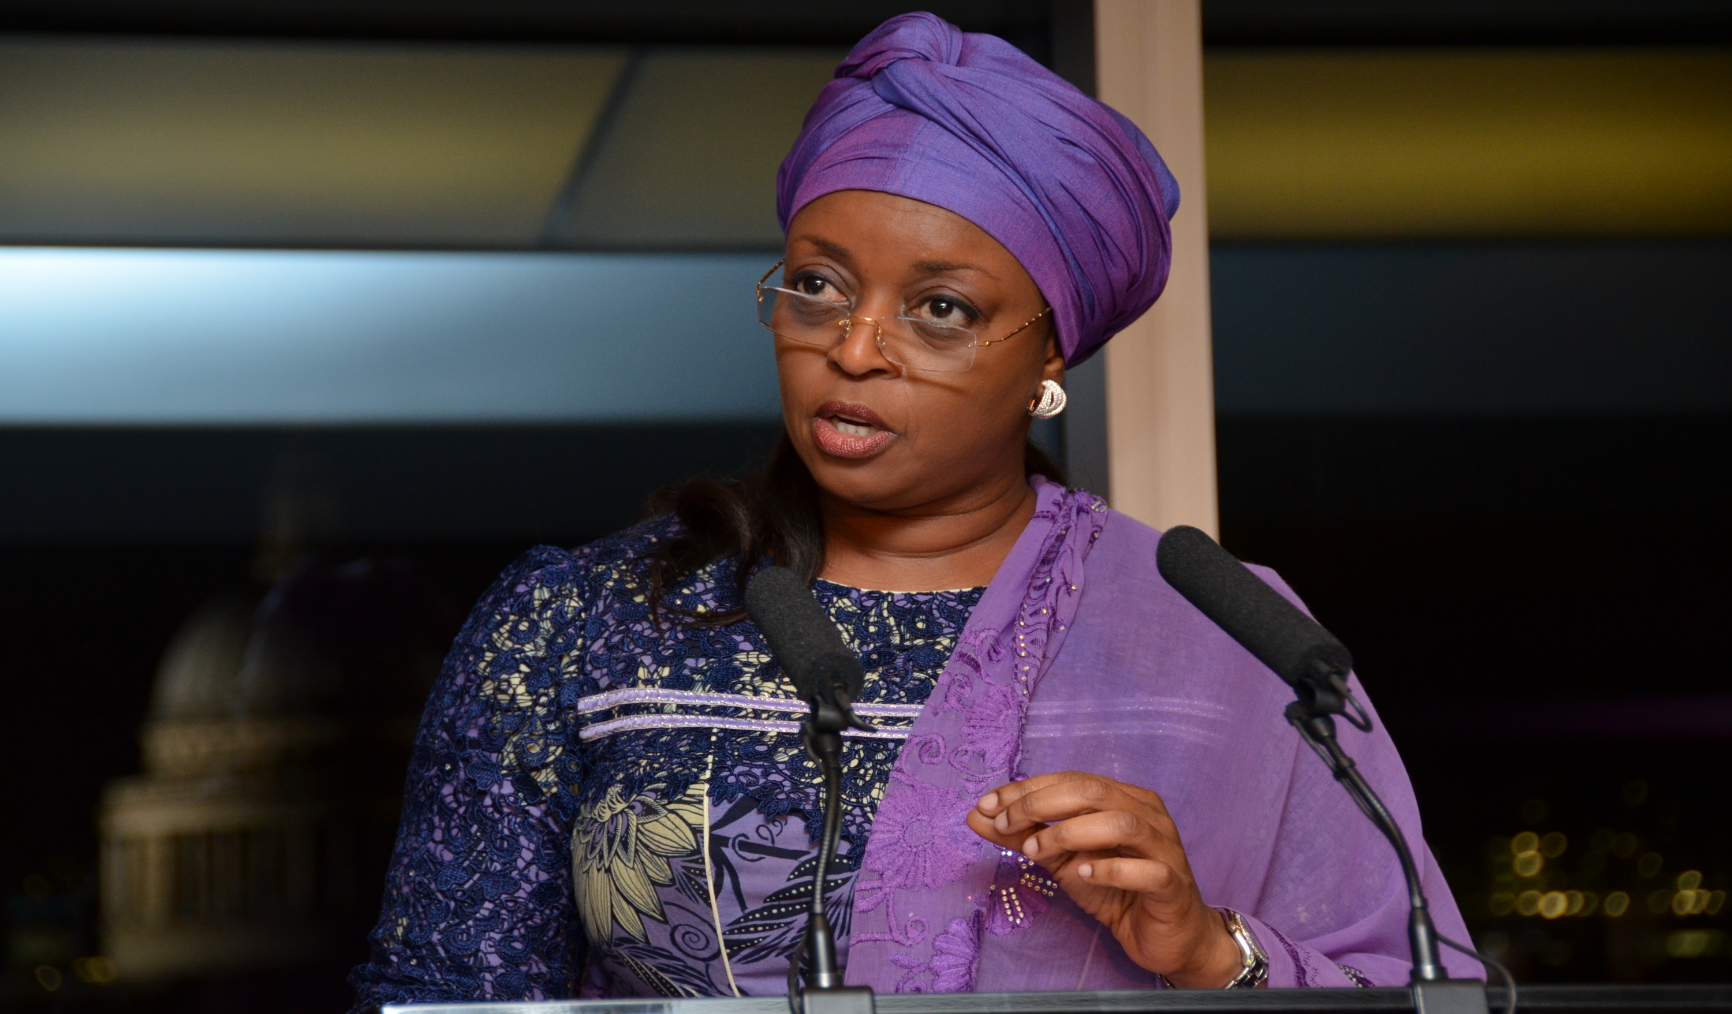 FW: EFCC confirms plans to extradite Diezani Madueke